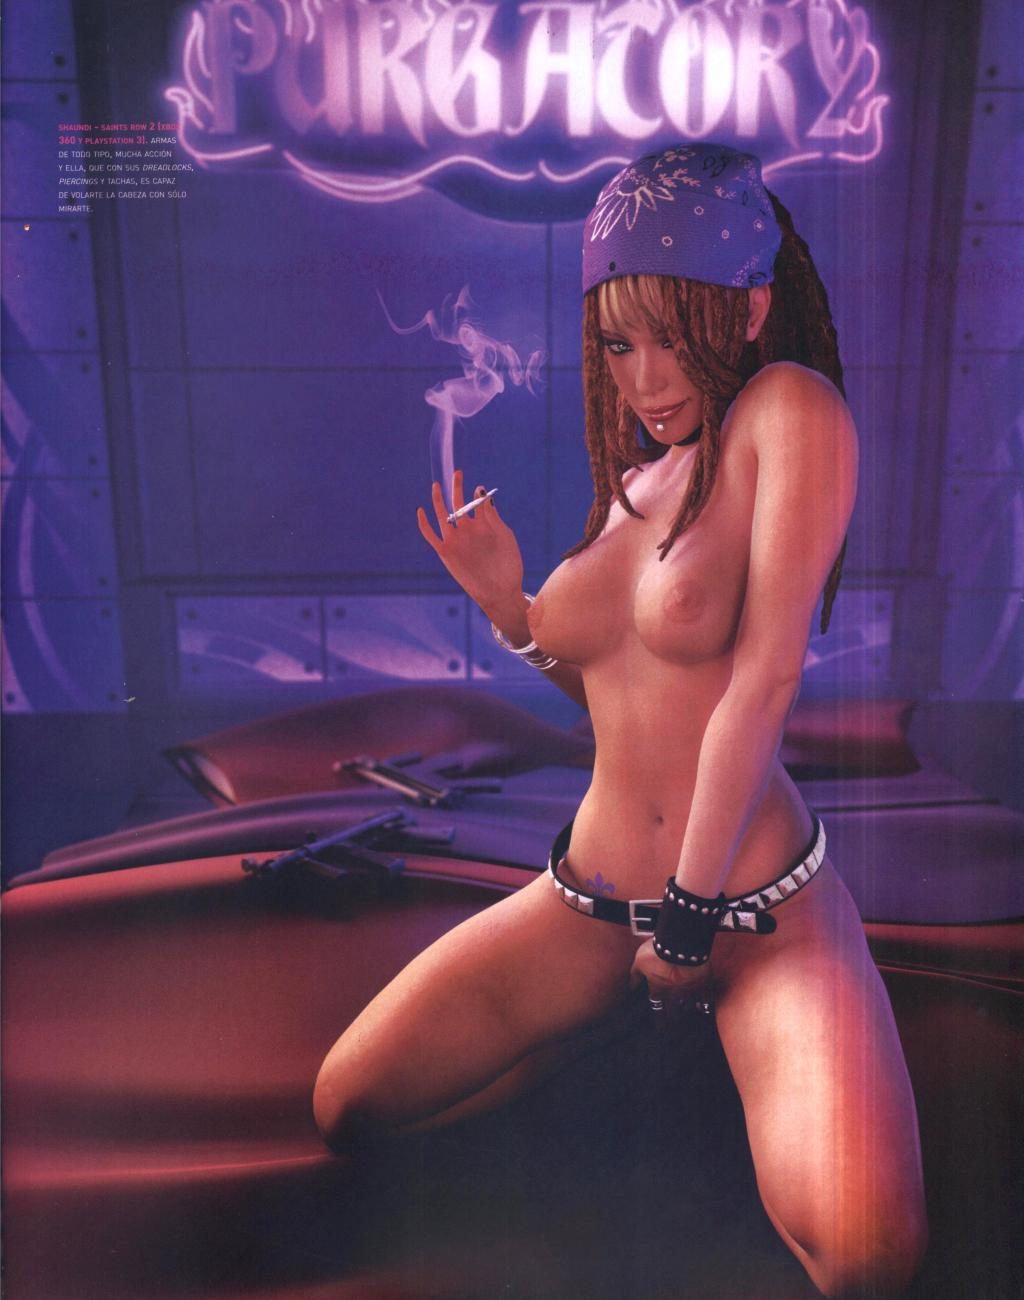 Saints row porn gallery fucked pictures